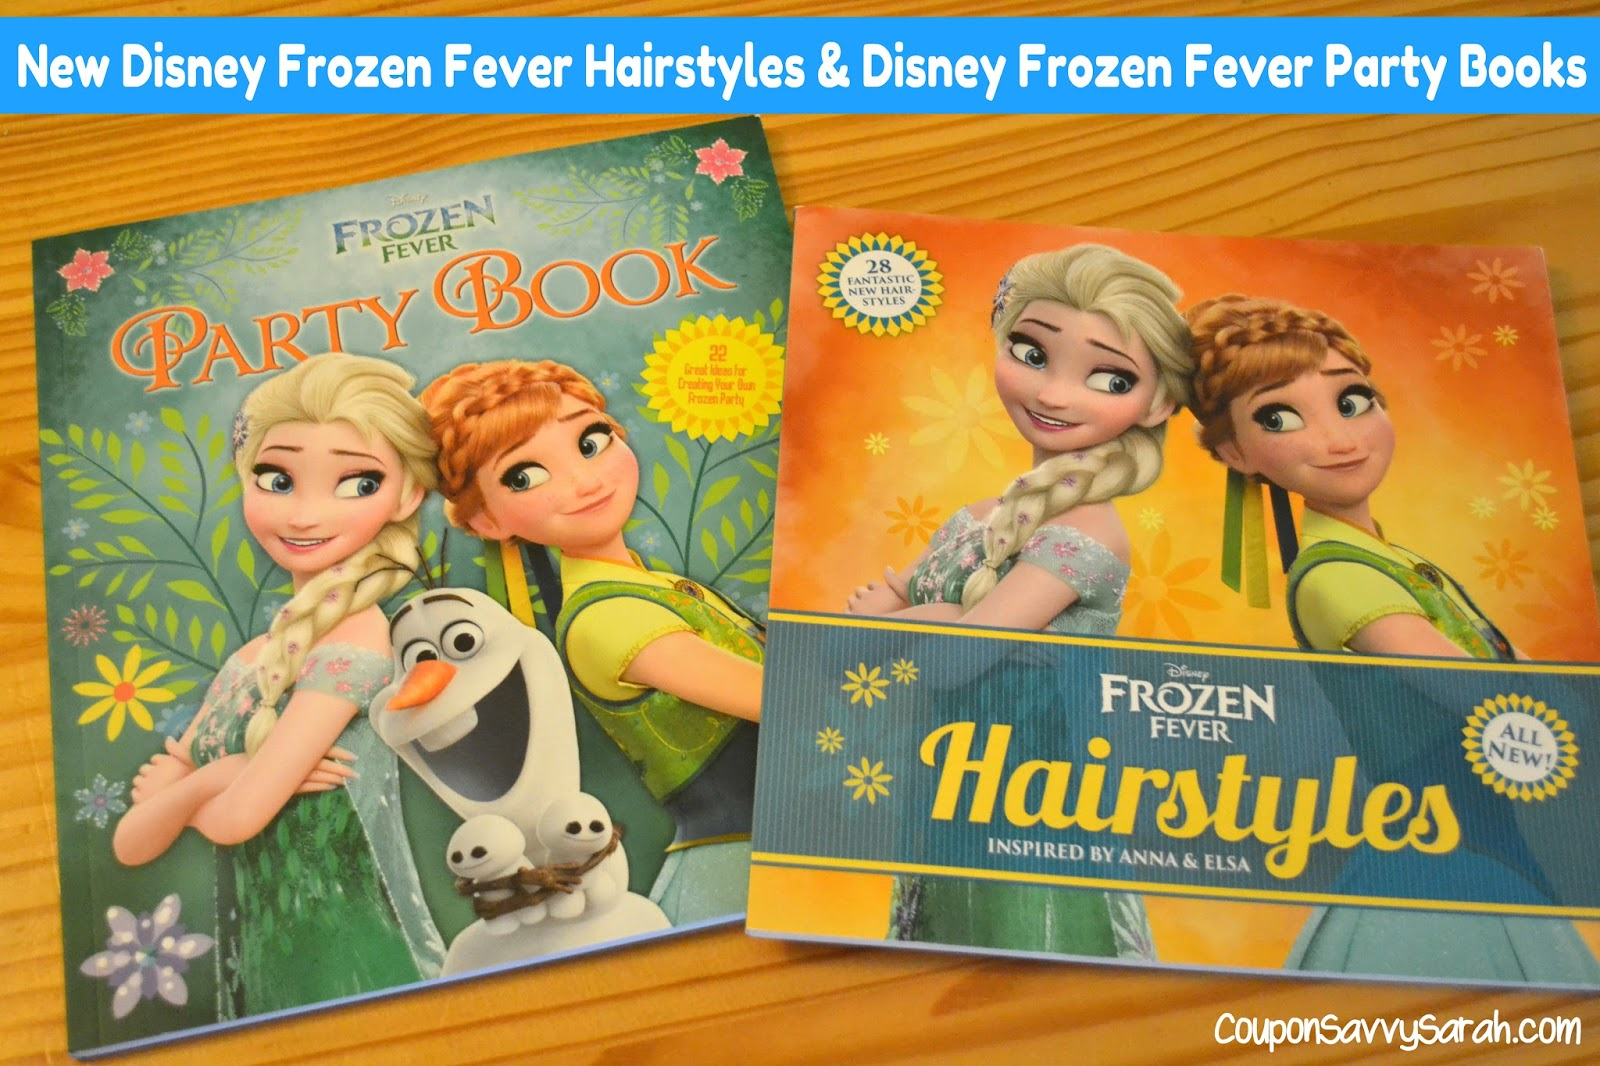 Coupon Savvy Sarah New Disney Books Frozen Fever Hairstyles And Frozen Fever Party Book Review Giveaway Ends 8 7